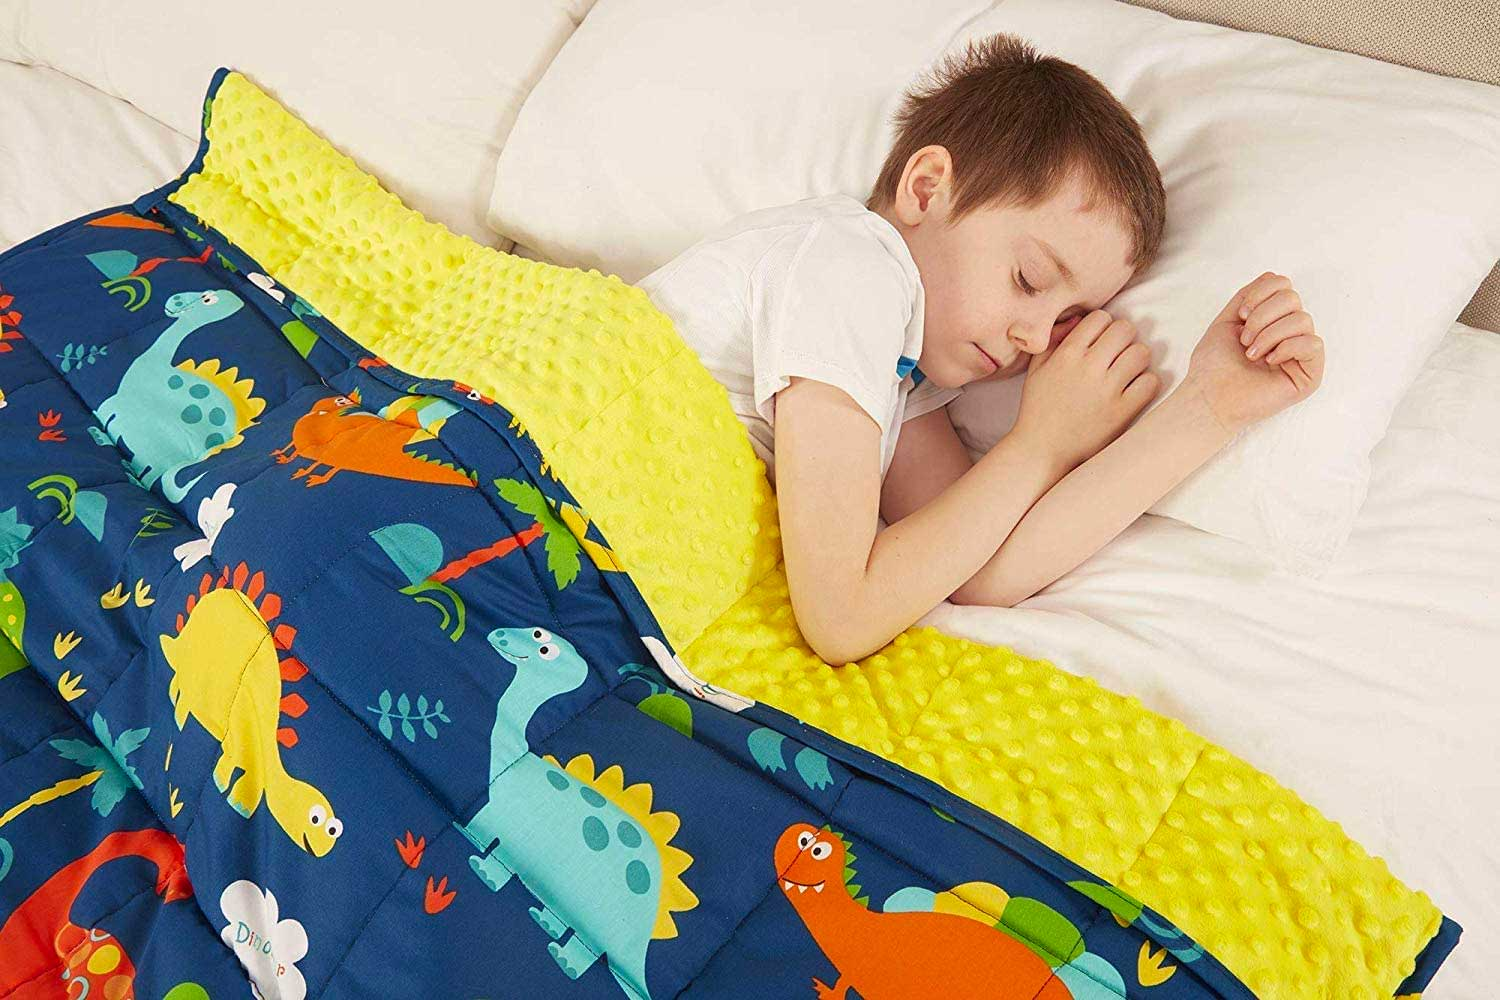 viceroy bedding Weighted Blanket for Children Kids Autism Anxiety - 100% Cotton with Sensory Soft Minky Dot Reverse Side - Heavy Weight Blanket for Sleep Therapy